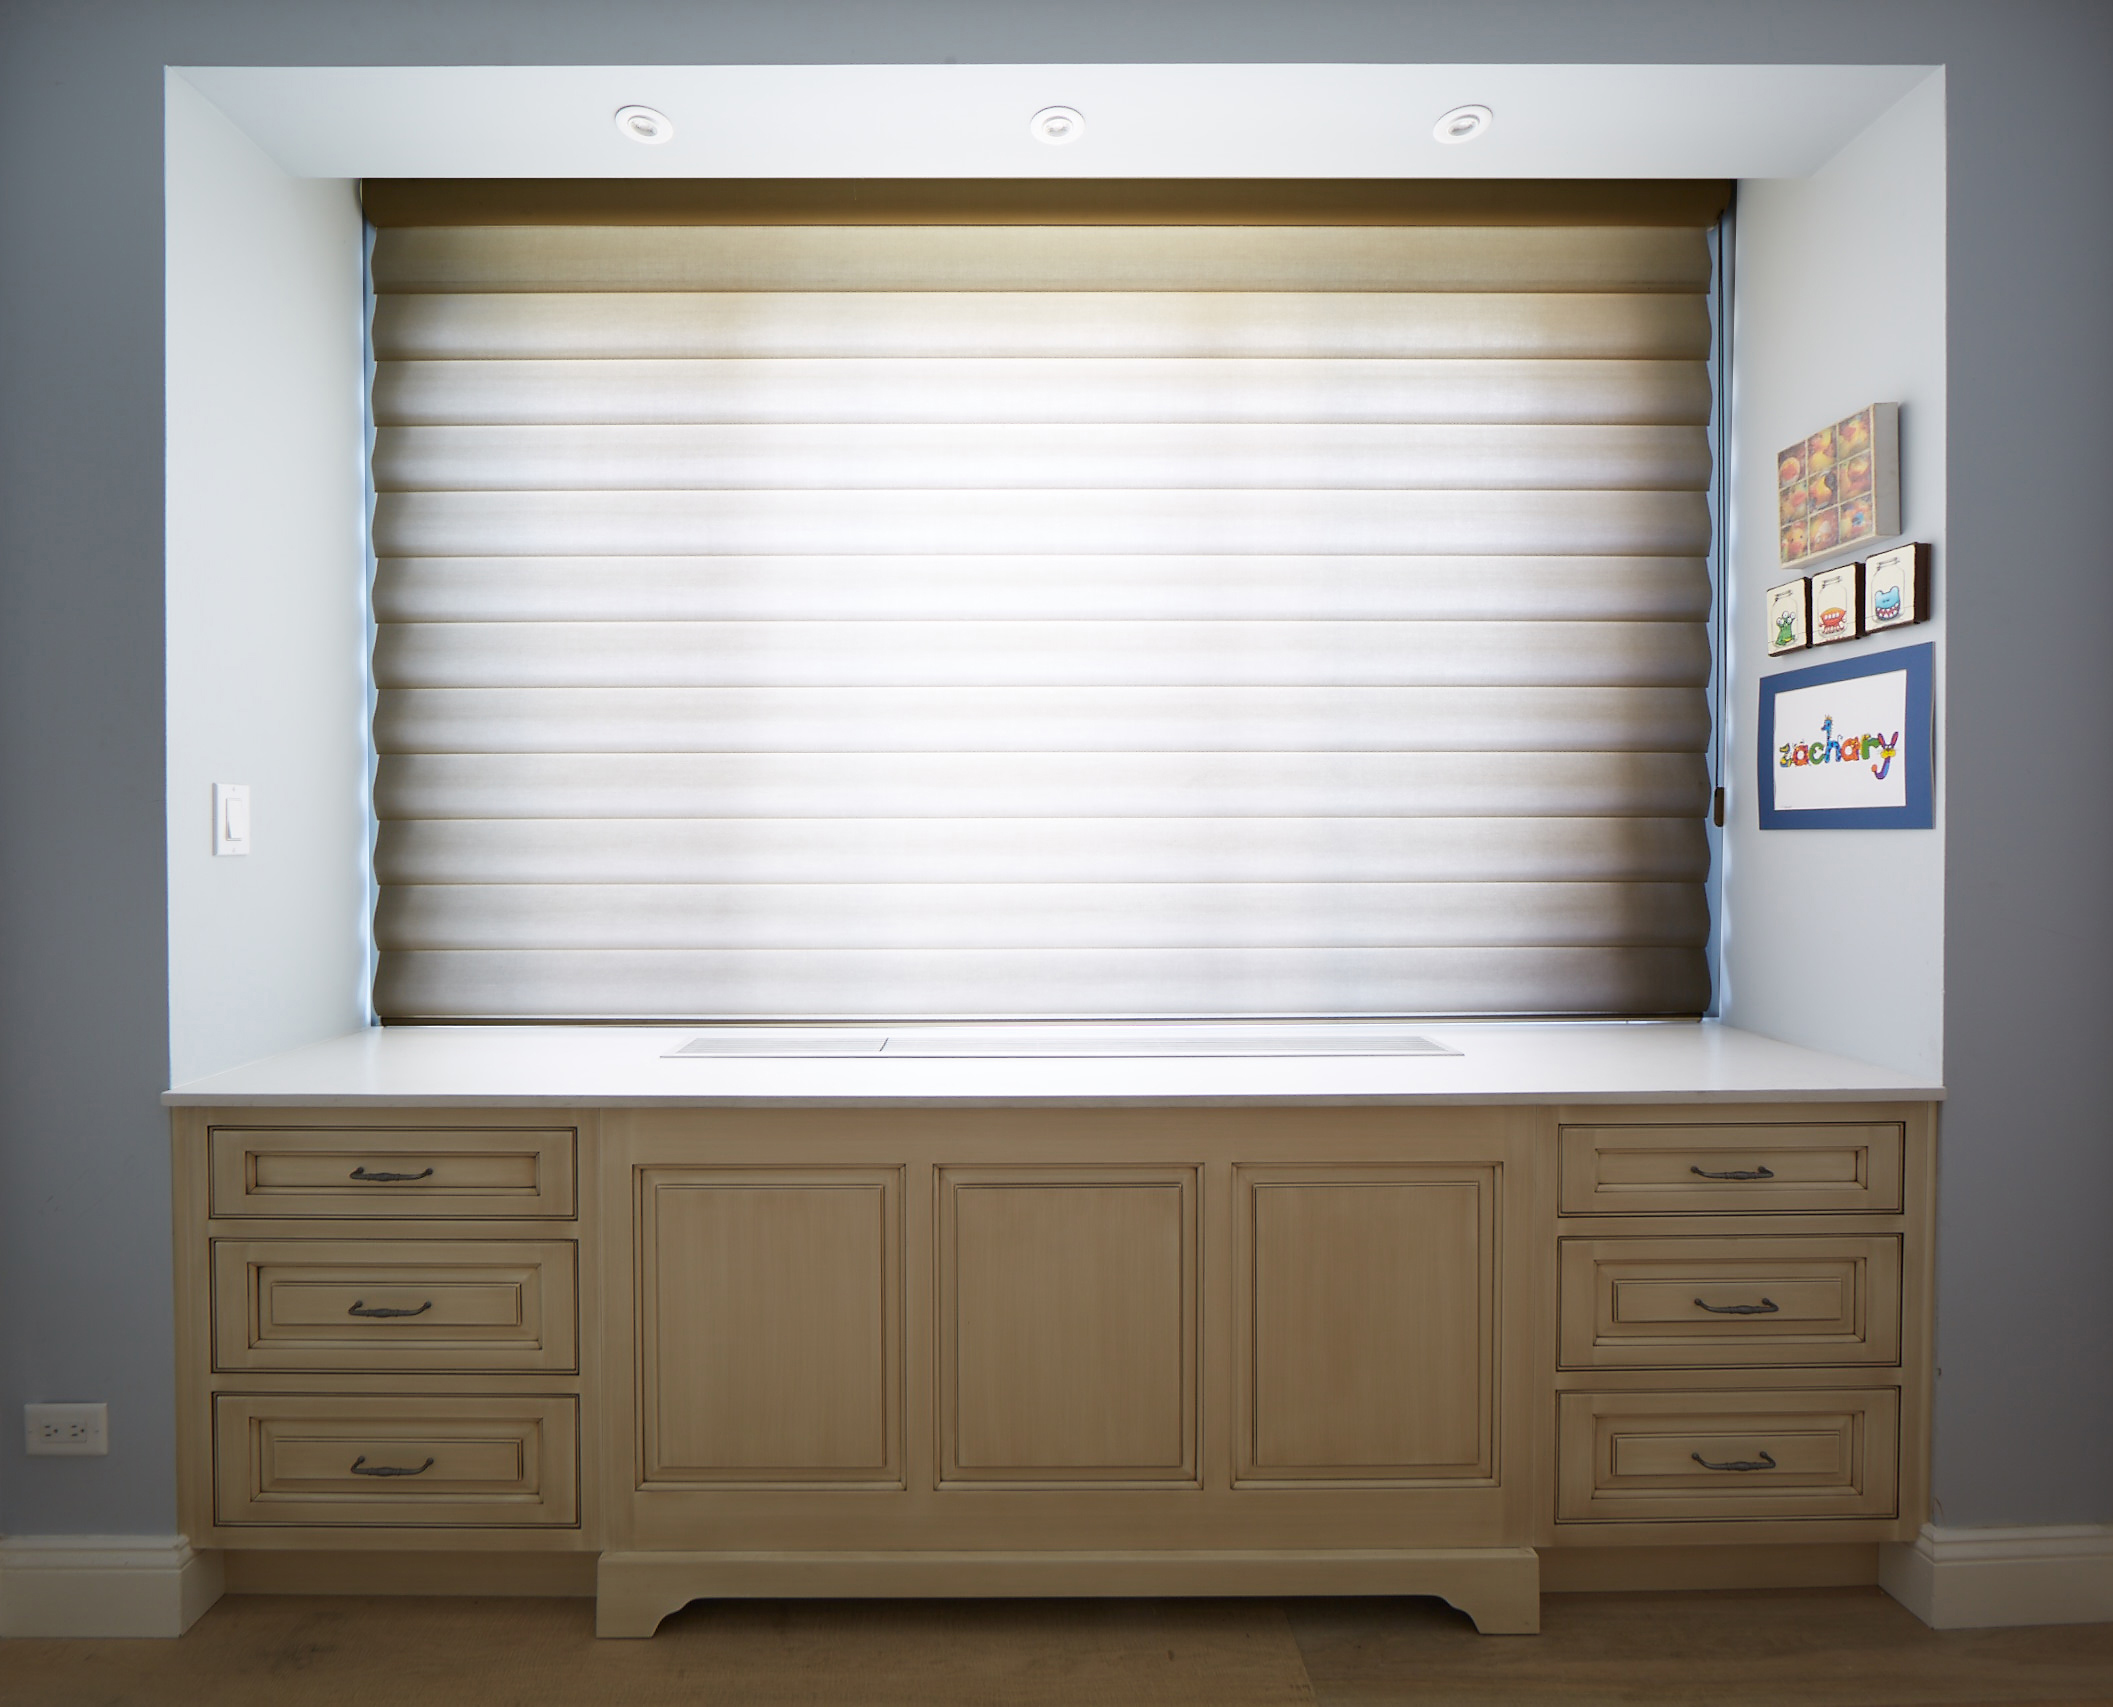 Radiator cover and cabinets